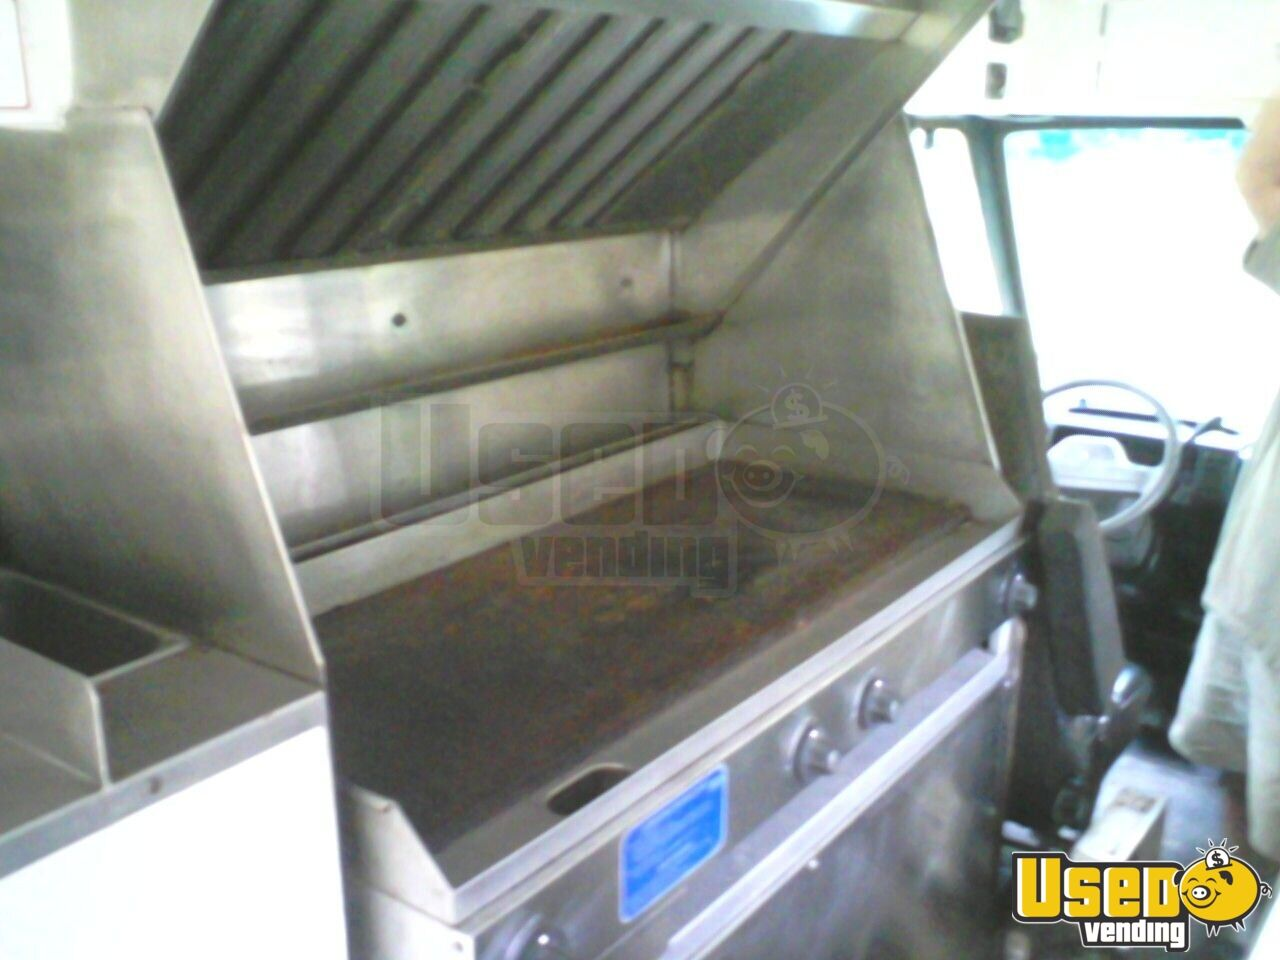 1991 Chrysler All-purpose Food Truck Hand-washing Sink Virginia for Sale - 8